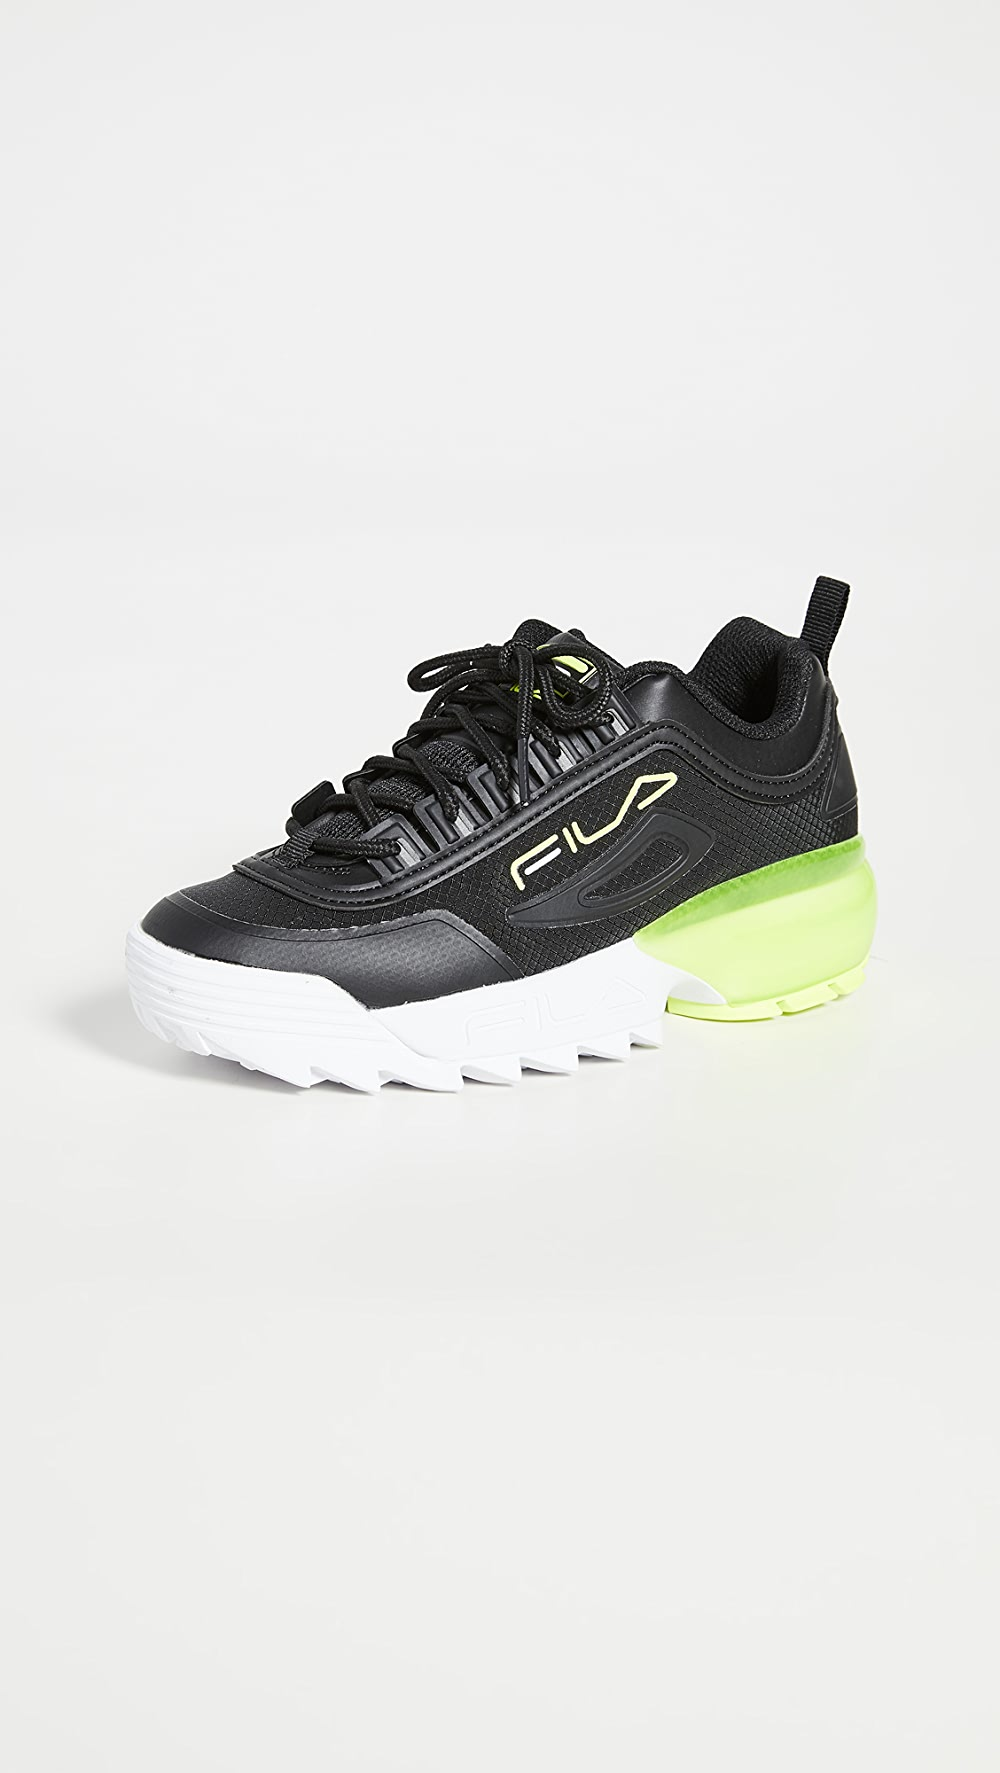 2019 New Style Fila - Disruptor 2a Sneakers Ample Supply And Prompt Delivery